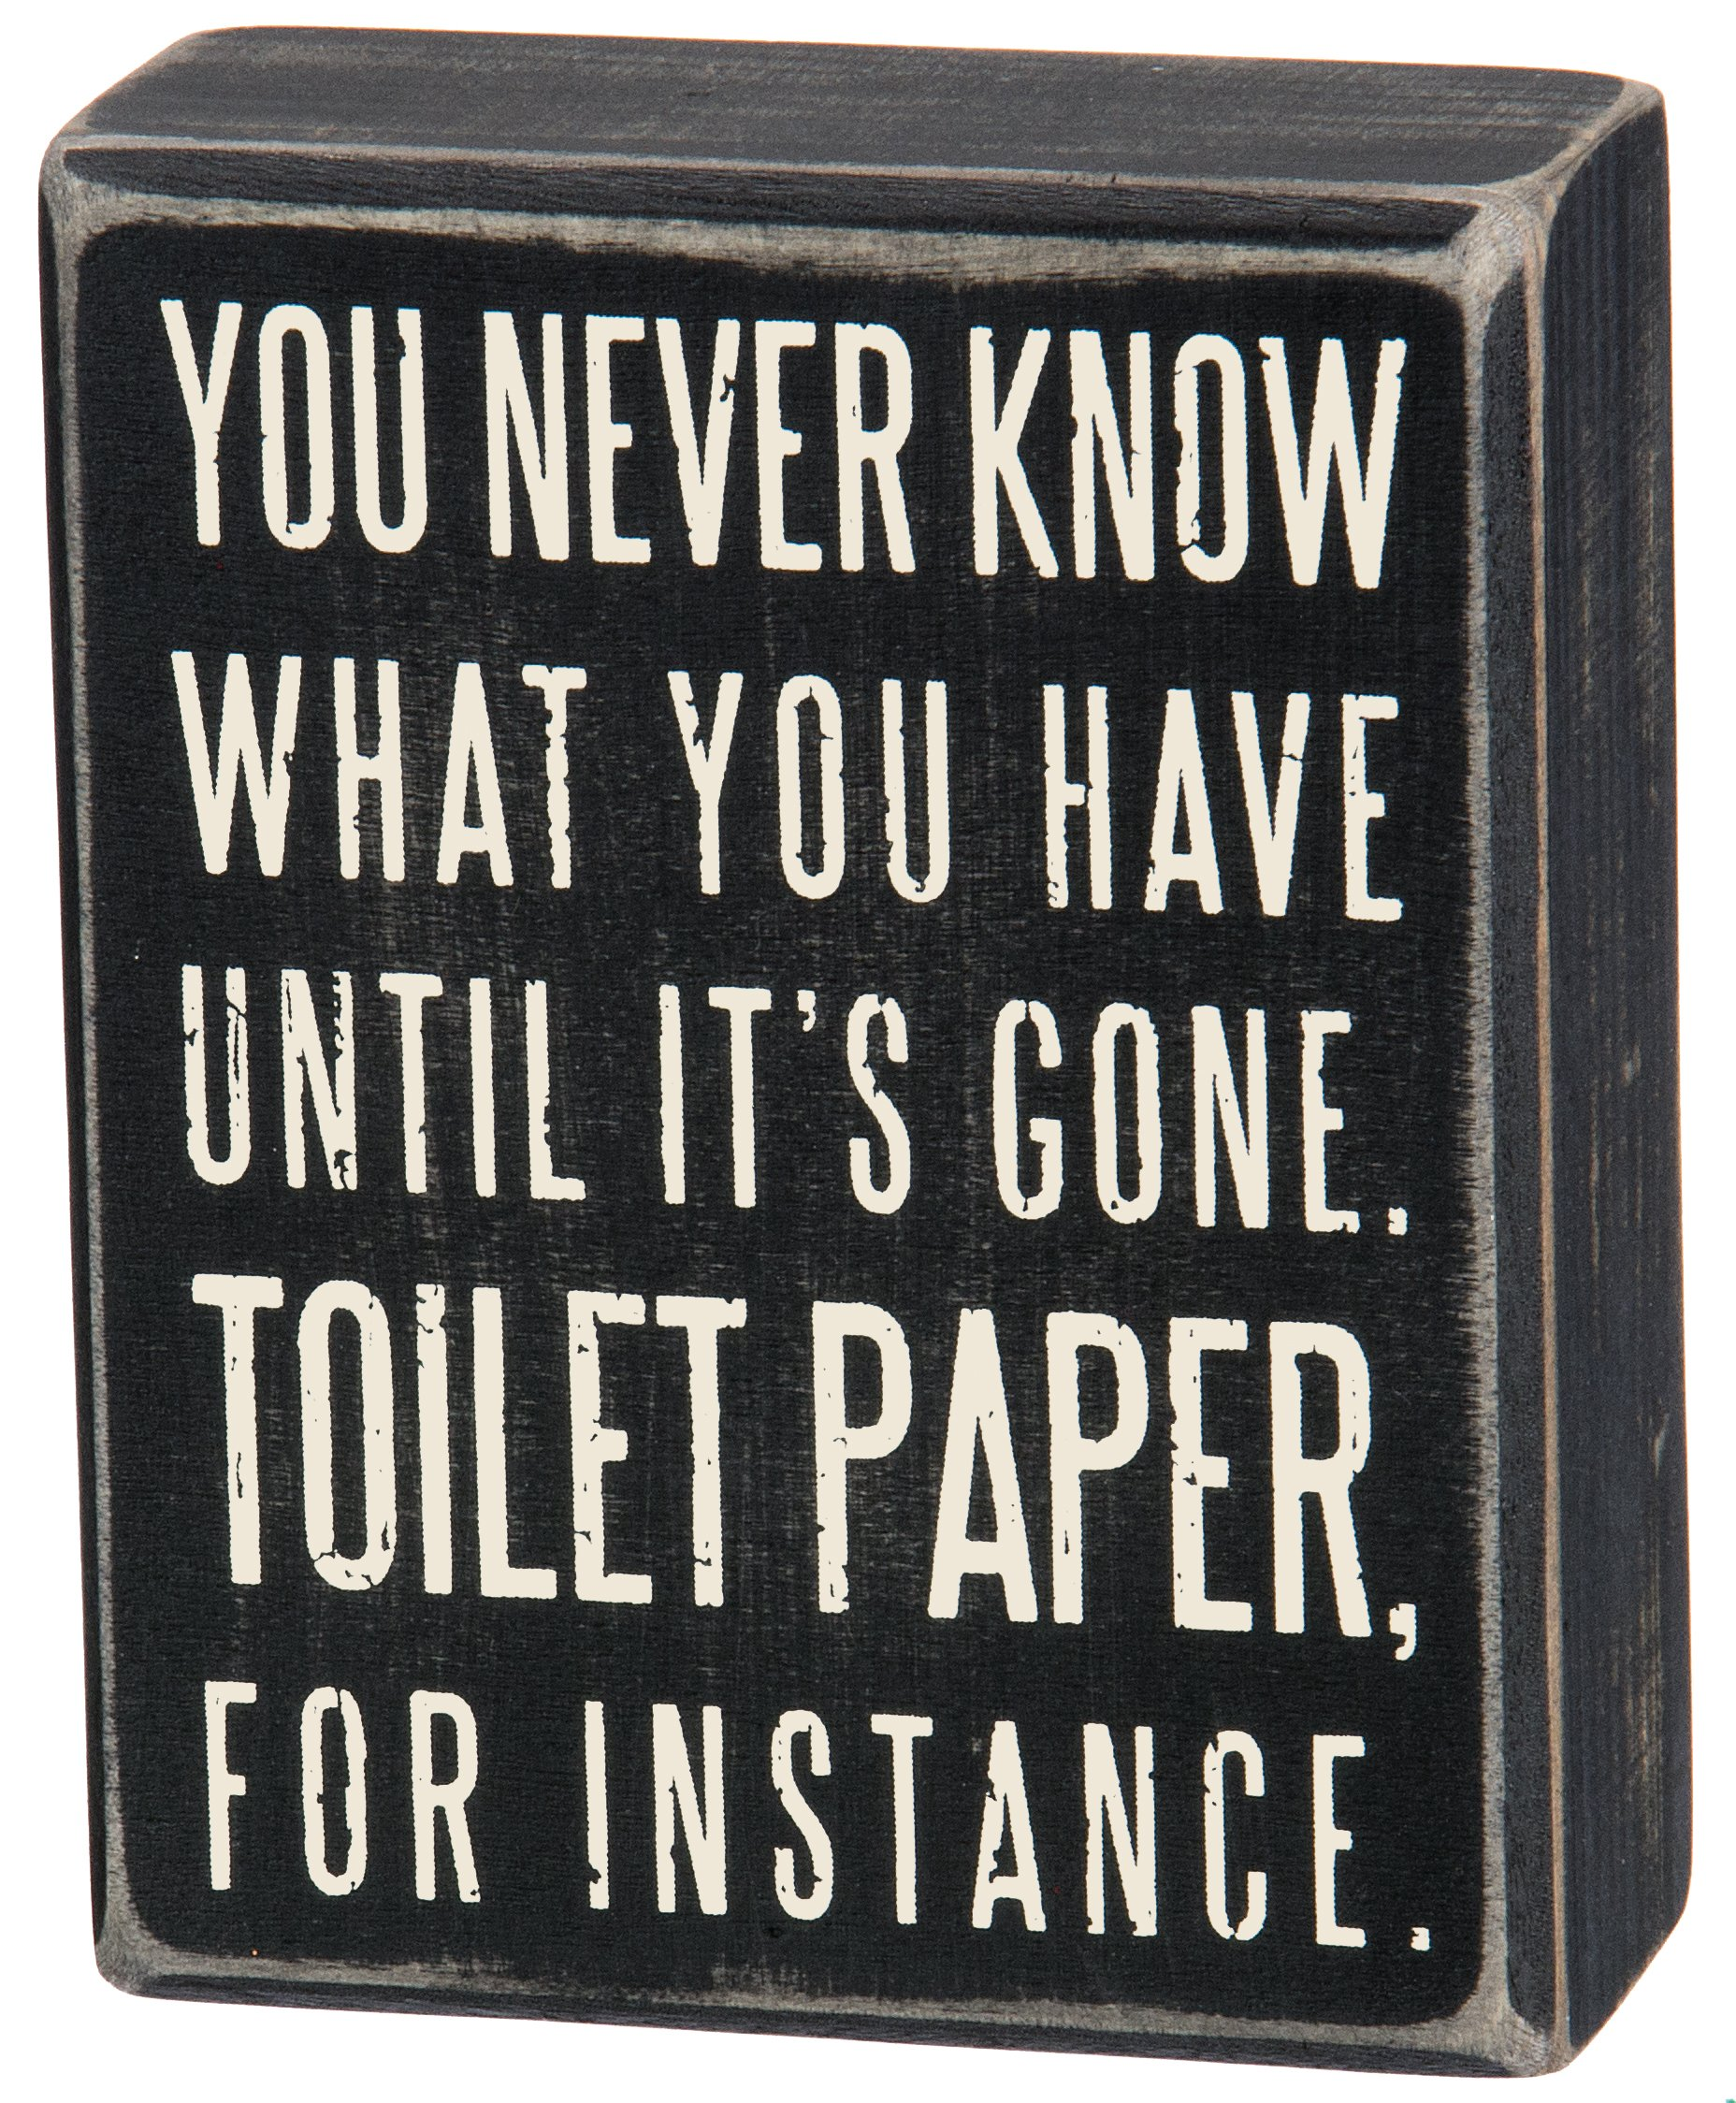 Primitives by Kathy Classic Box Sign 4 x 5-Inches You Never Know What You Have Until It's Gone 1 Primitives by Kathy decorative mini box sign Sign measures 4 x 5-inches; designed to freely stand on its own or hang on a wall Reads: You Never Know What You've Got Until It's Gone. Toilet Paper For Instance.